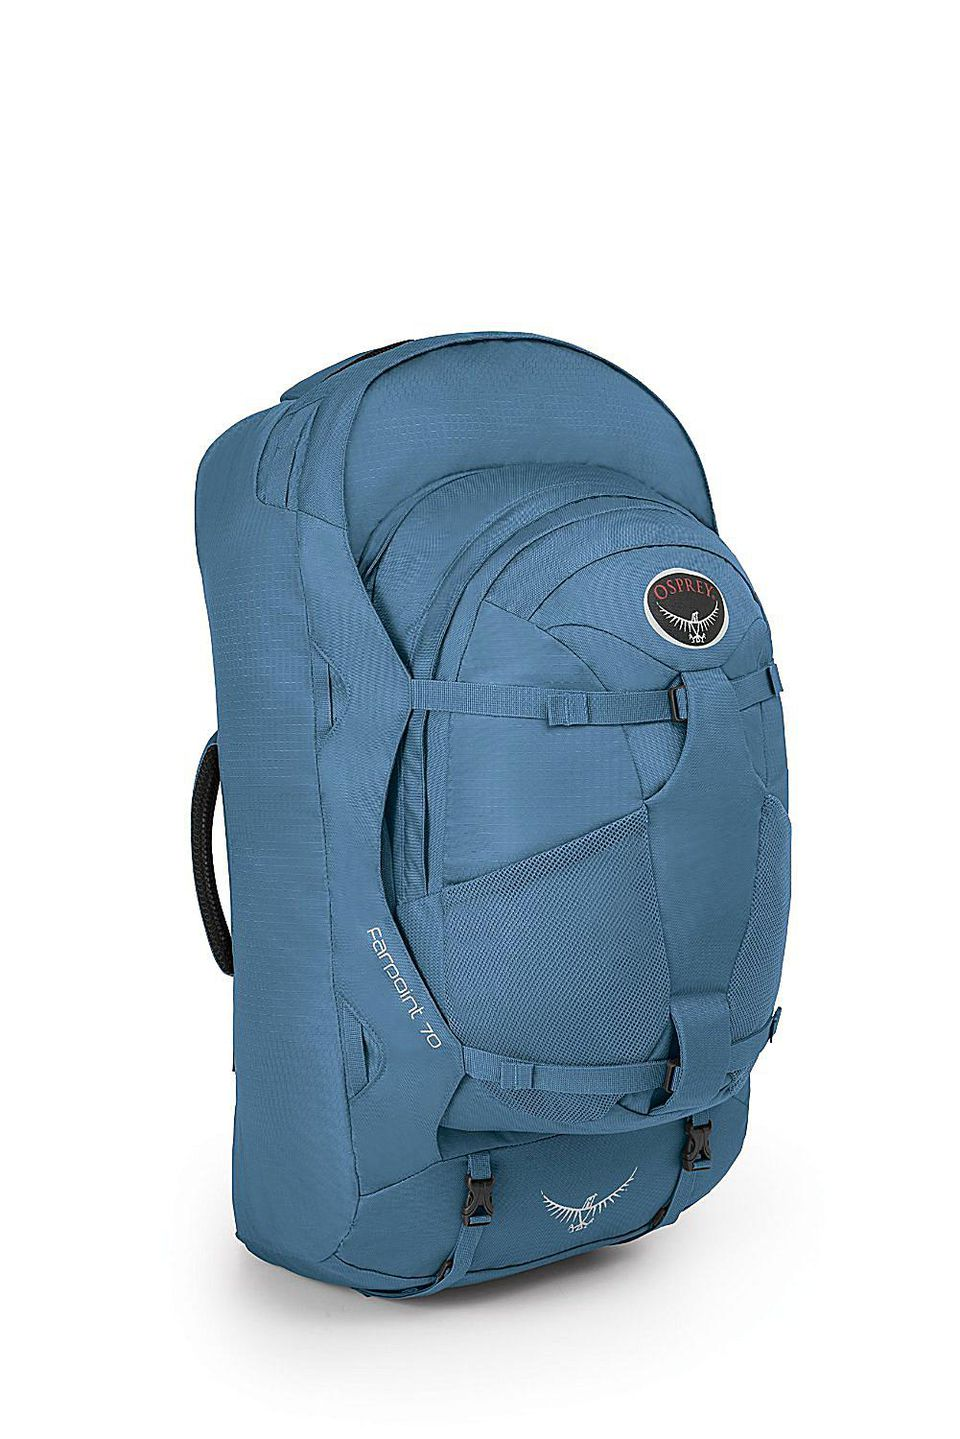 Why The Osprey Farpoint 70 Is The Best Travel Backpack